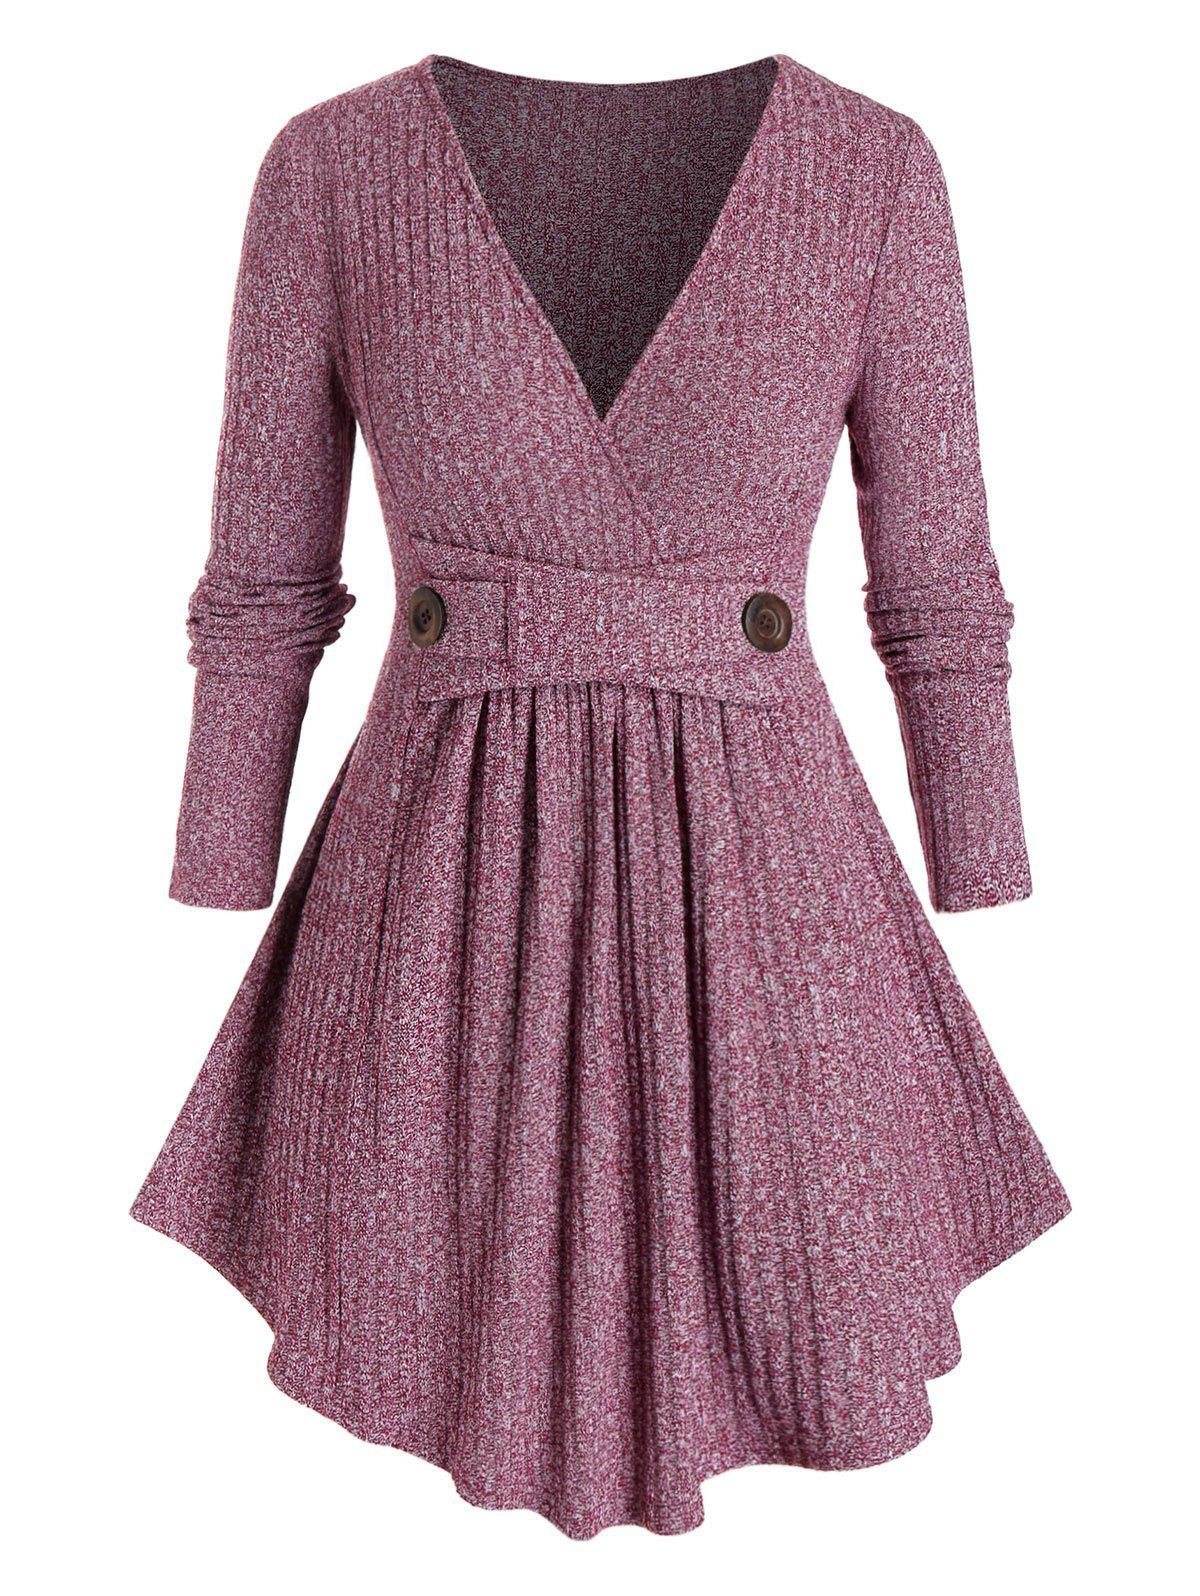 Plus Size Marled Ribbed Knitwear - RED WINE 5X